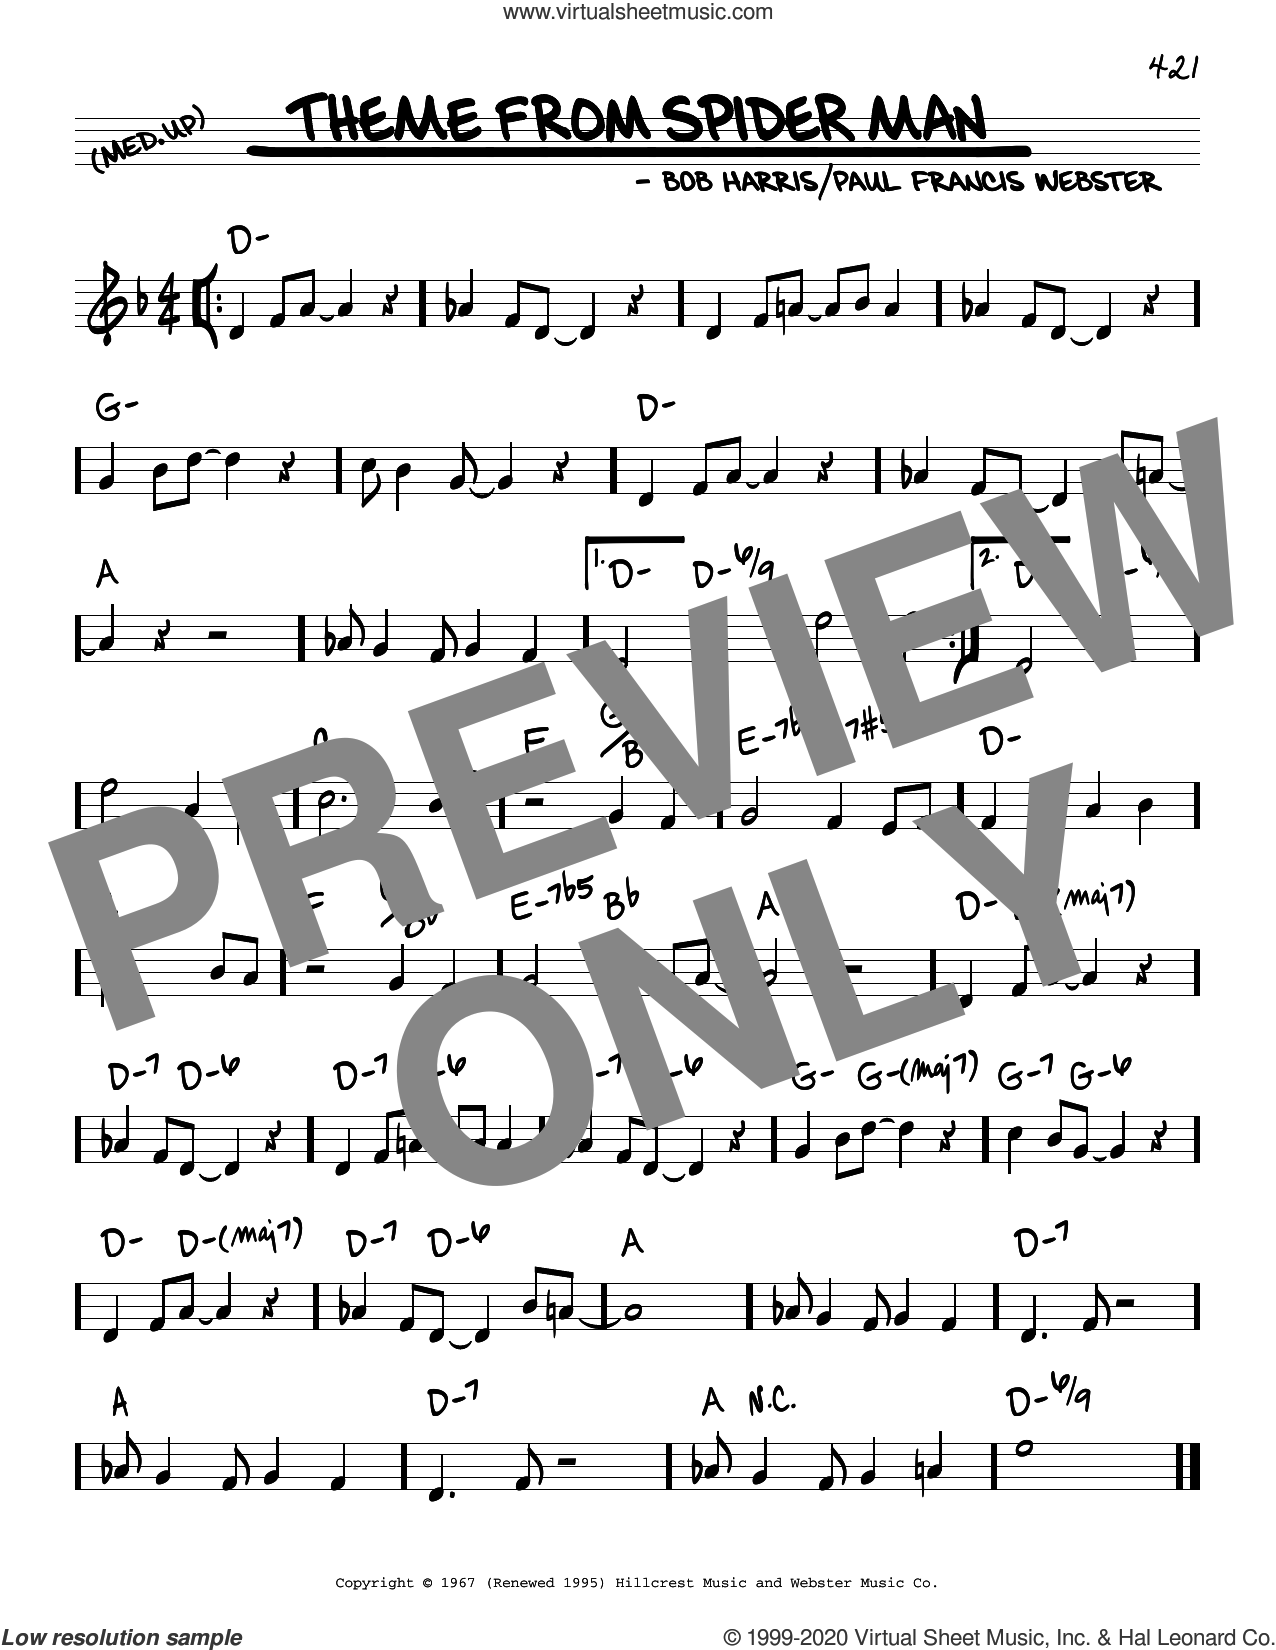 Theme From Spider Man sheet music for voice and other instruments (real book) by Bob Harris and Paul Francis Webster, intermediate skill level